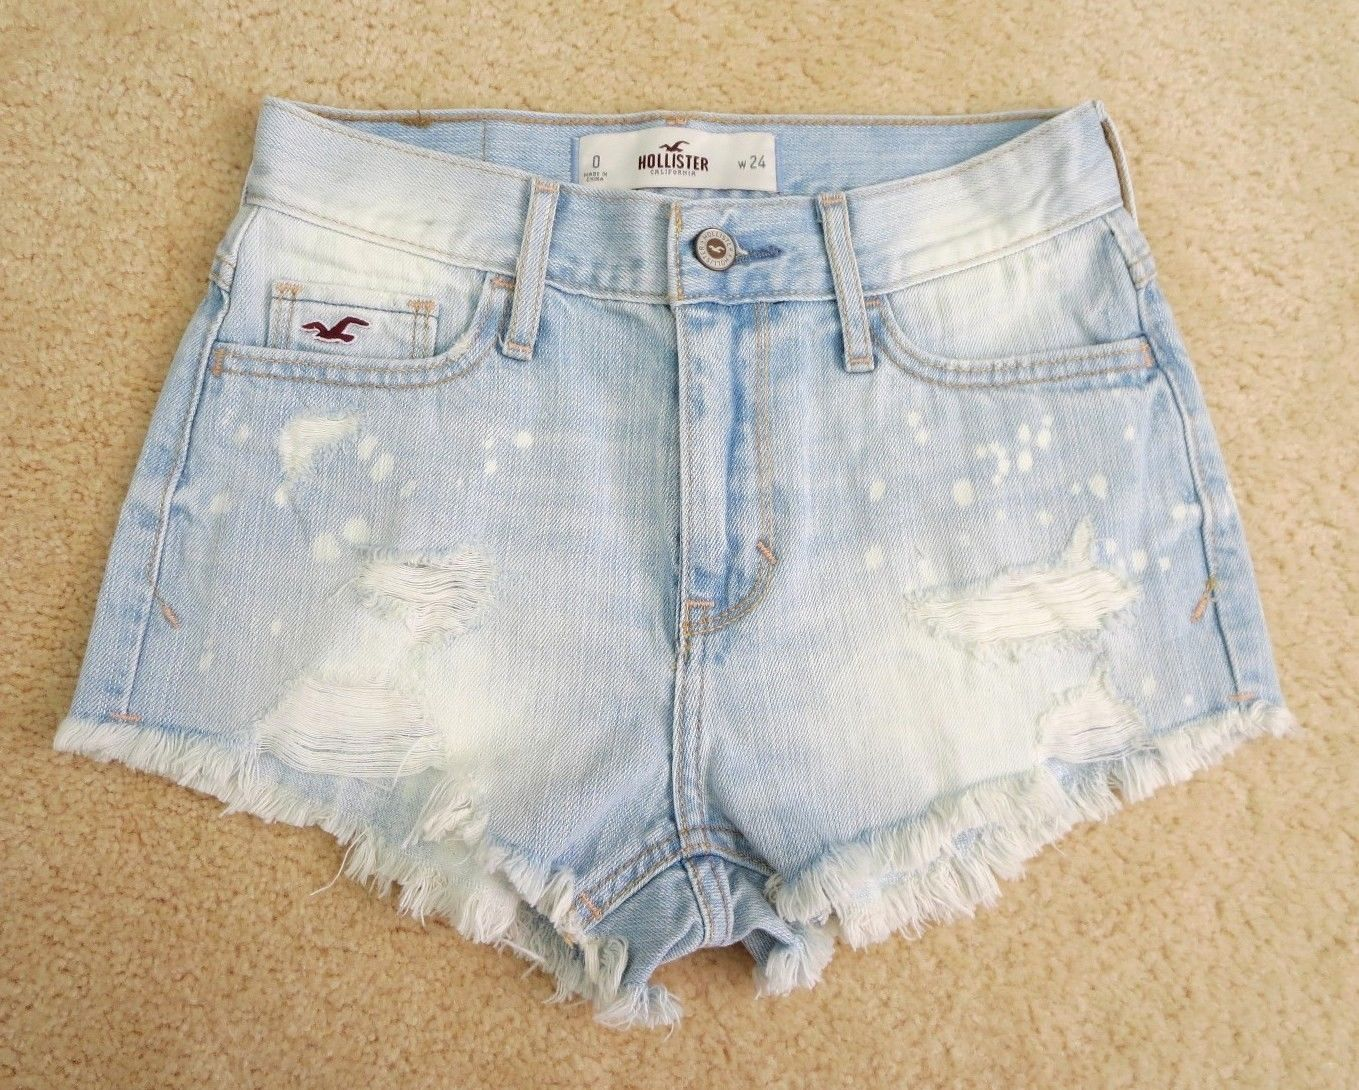 Hollister Womens Denim Destroyed High Waisted Shorts Size 0 Light ...